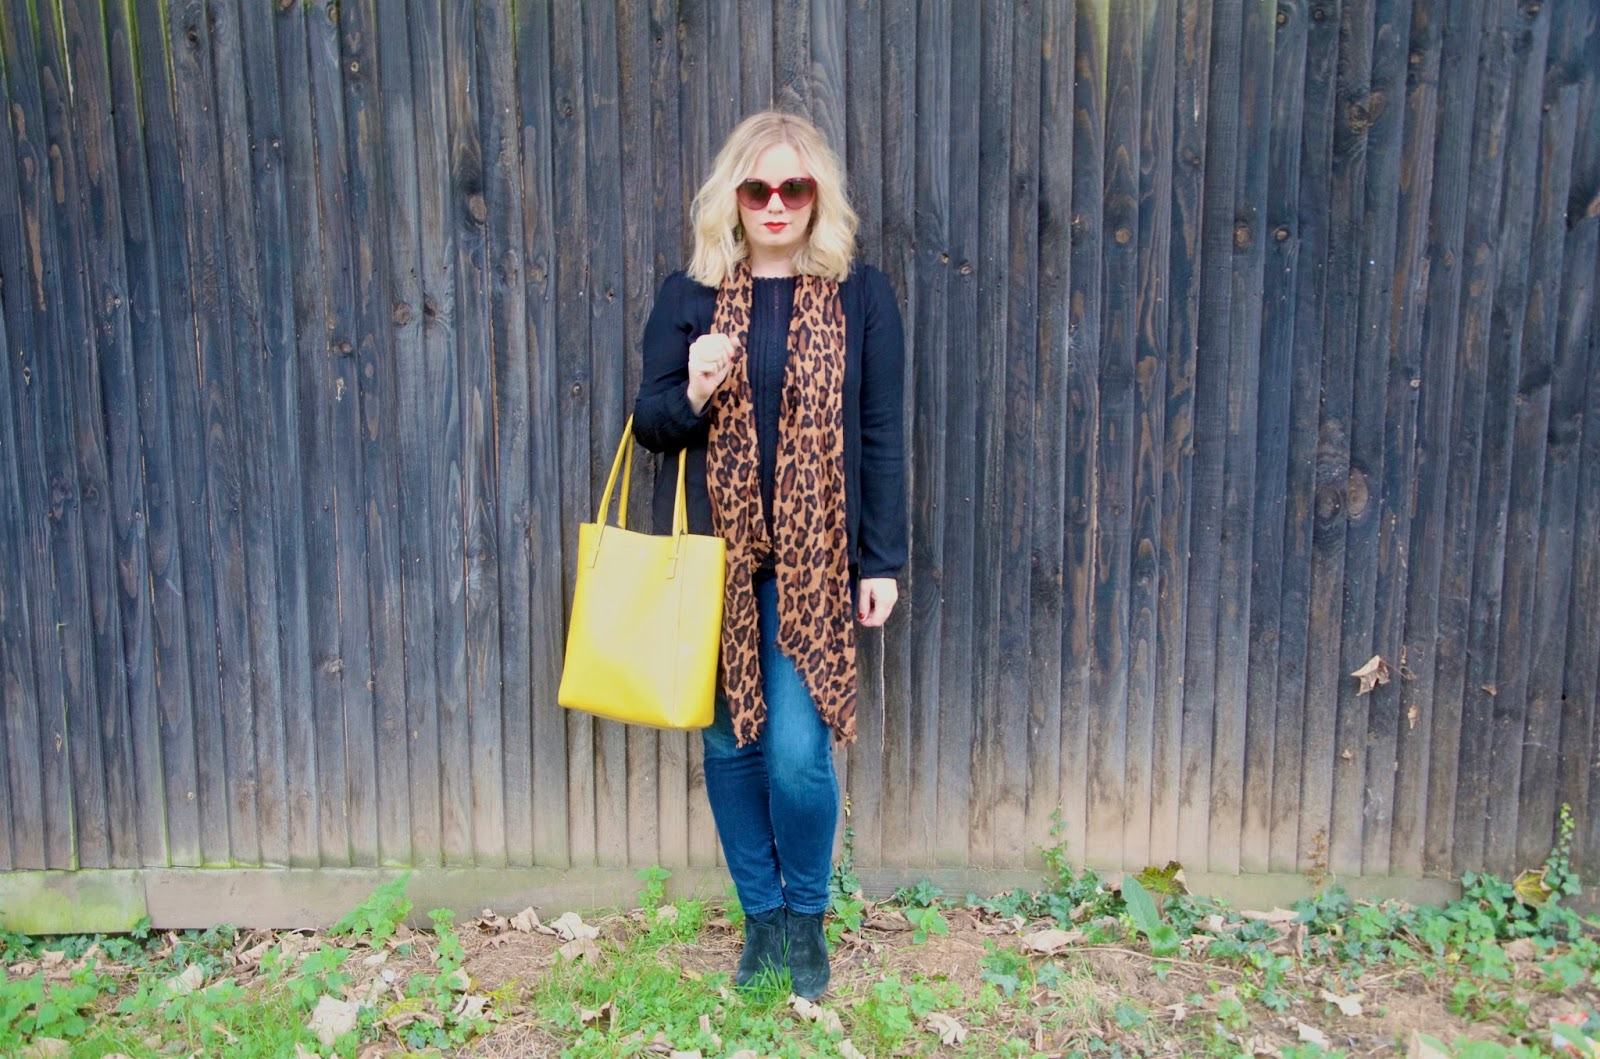 Yellow bag, leopard scarf, jeans and hot pink sunglasses